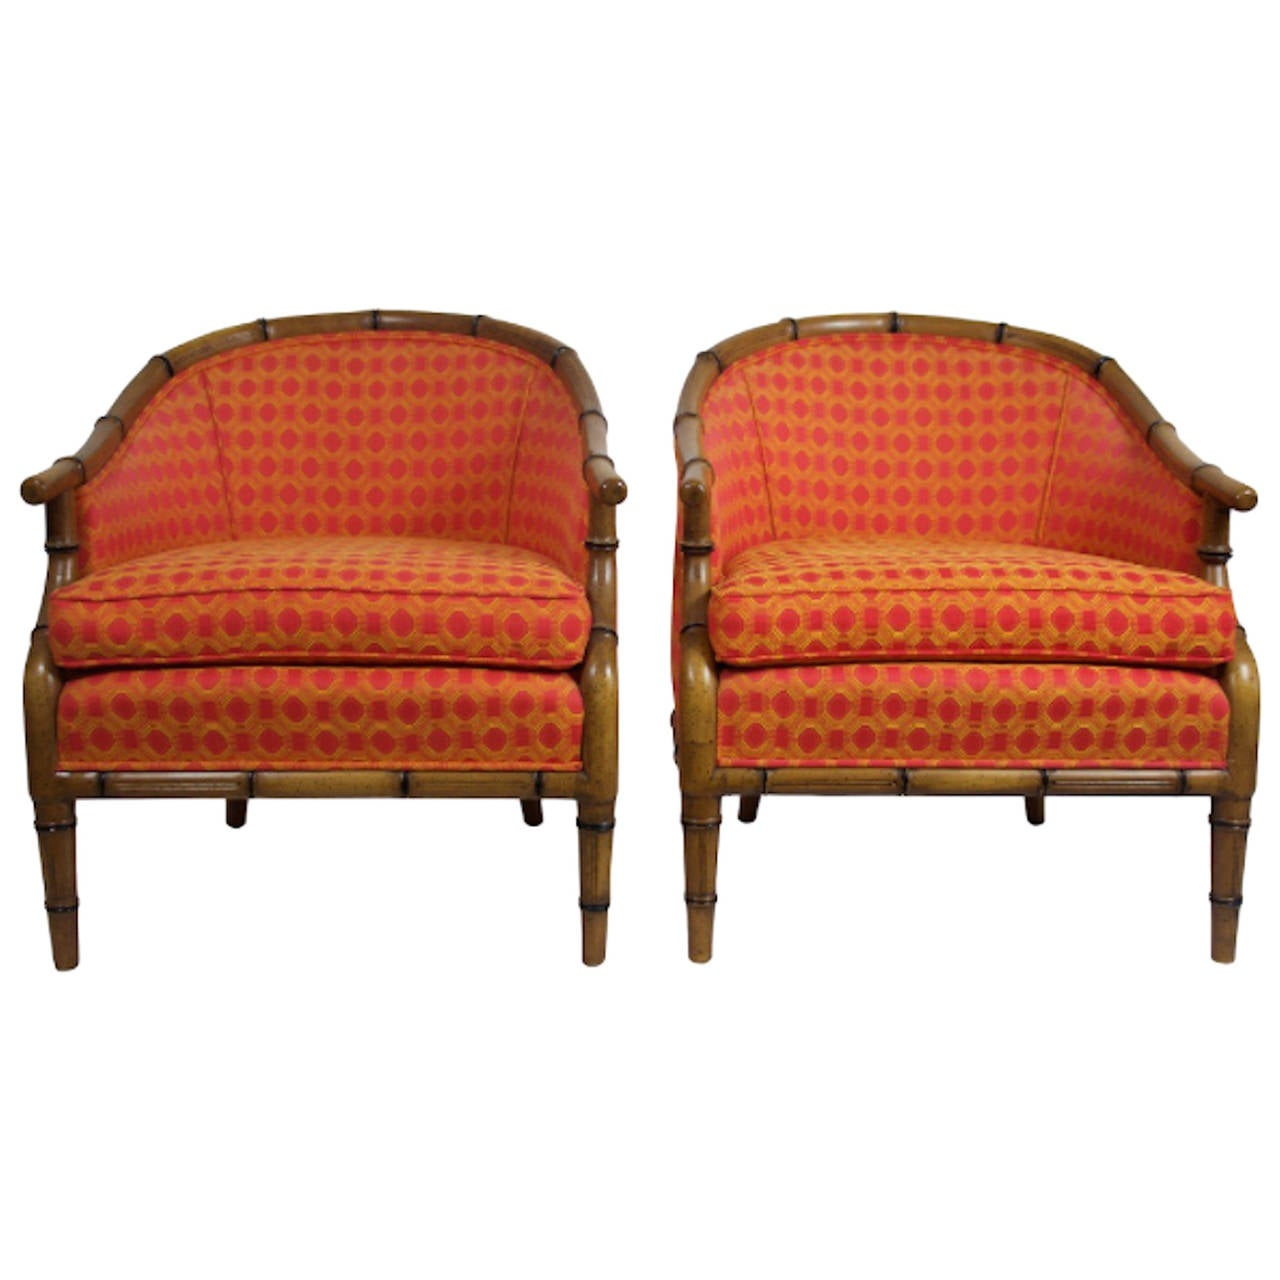 Pair of Faux Bamboo Chairs by Century at 1stdibs : 2823512l from www.1stdibs.com size 1280 x 1280 jpeg 103kB